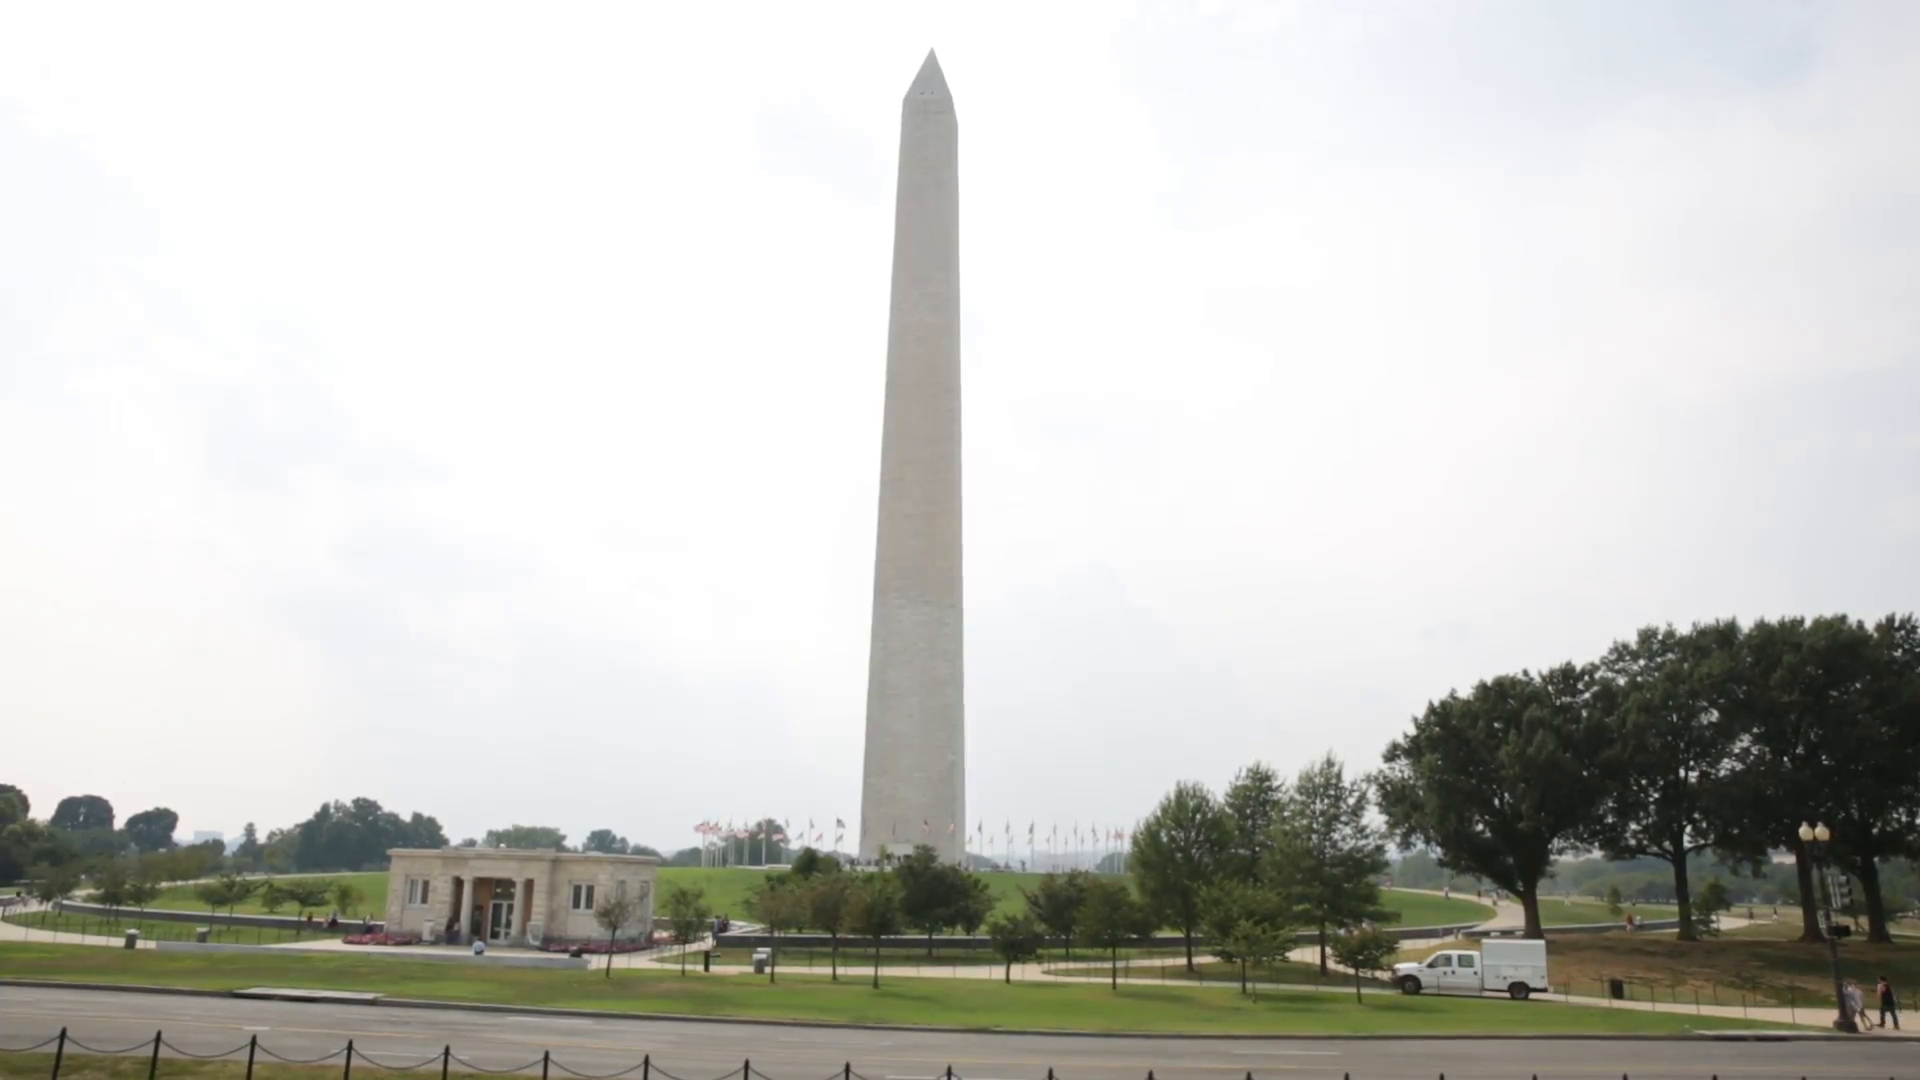 The Washington Monument in Washington D.C. (4) Stock Video Footage -  VideoBlocks - Washington Monument PNG HD